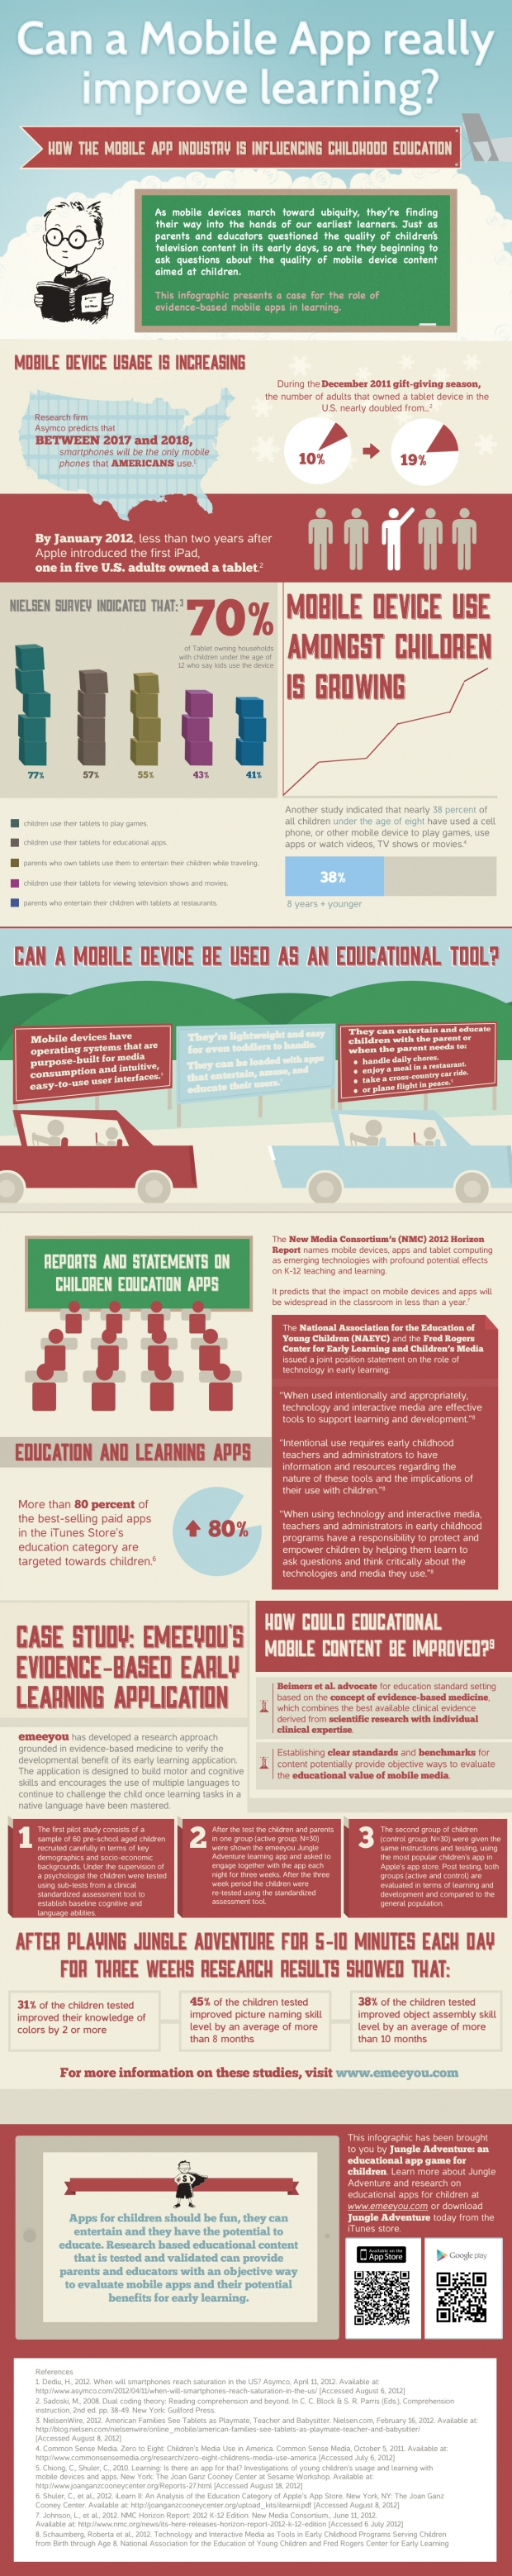 can-a-mobile-app-really-improve-learning